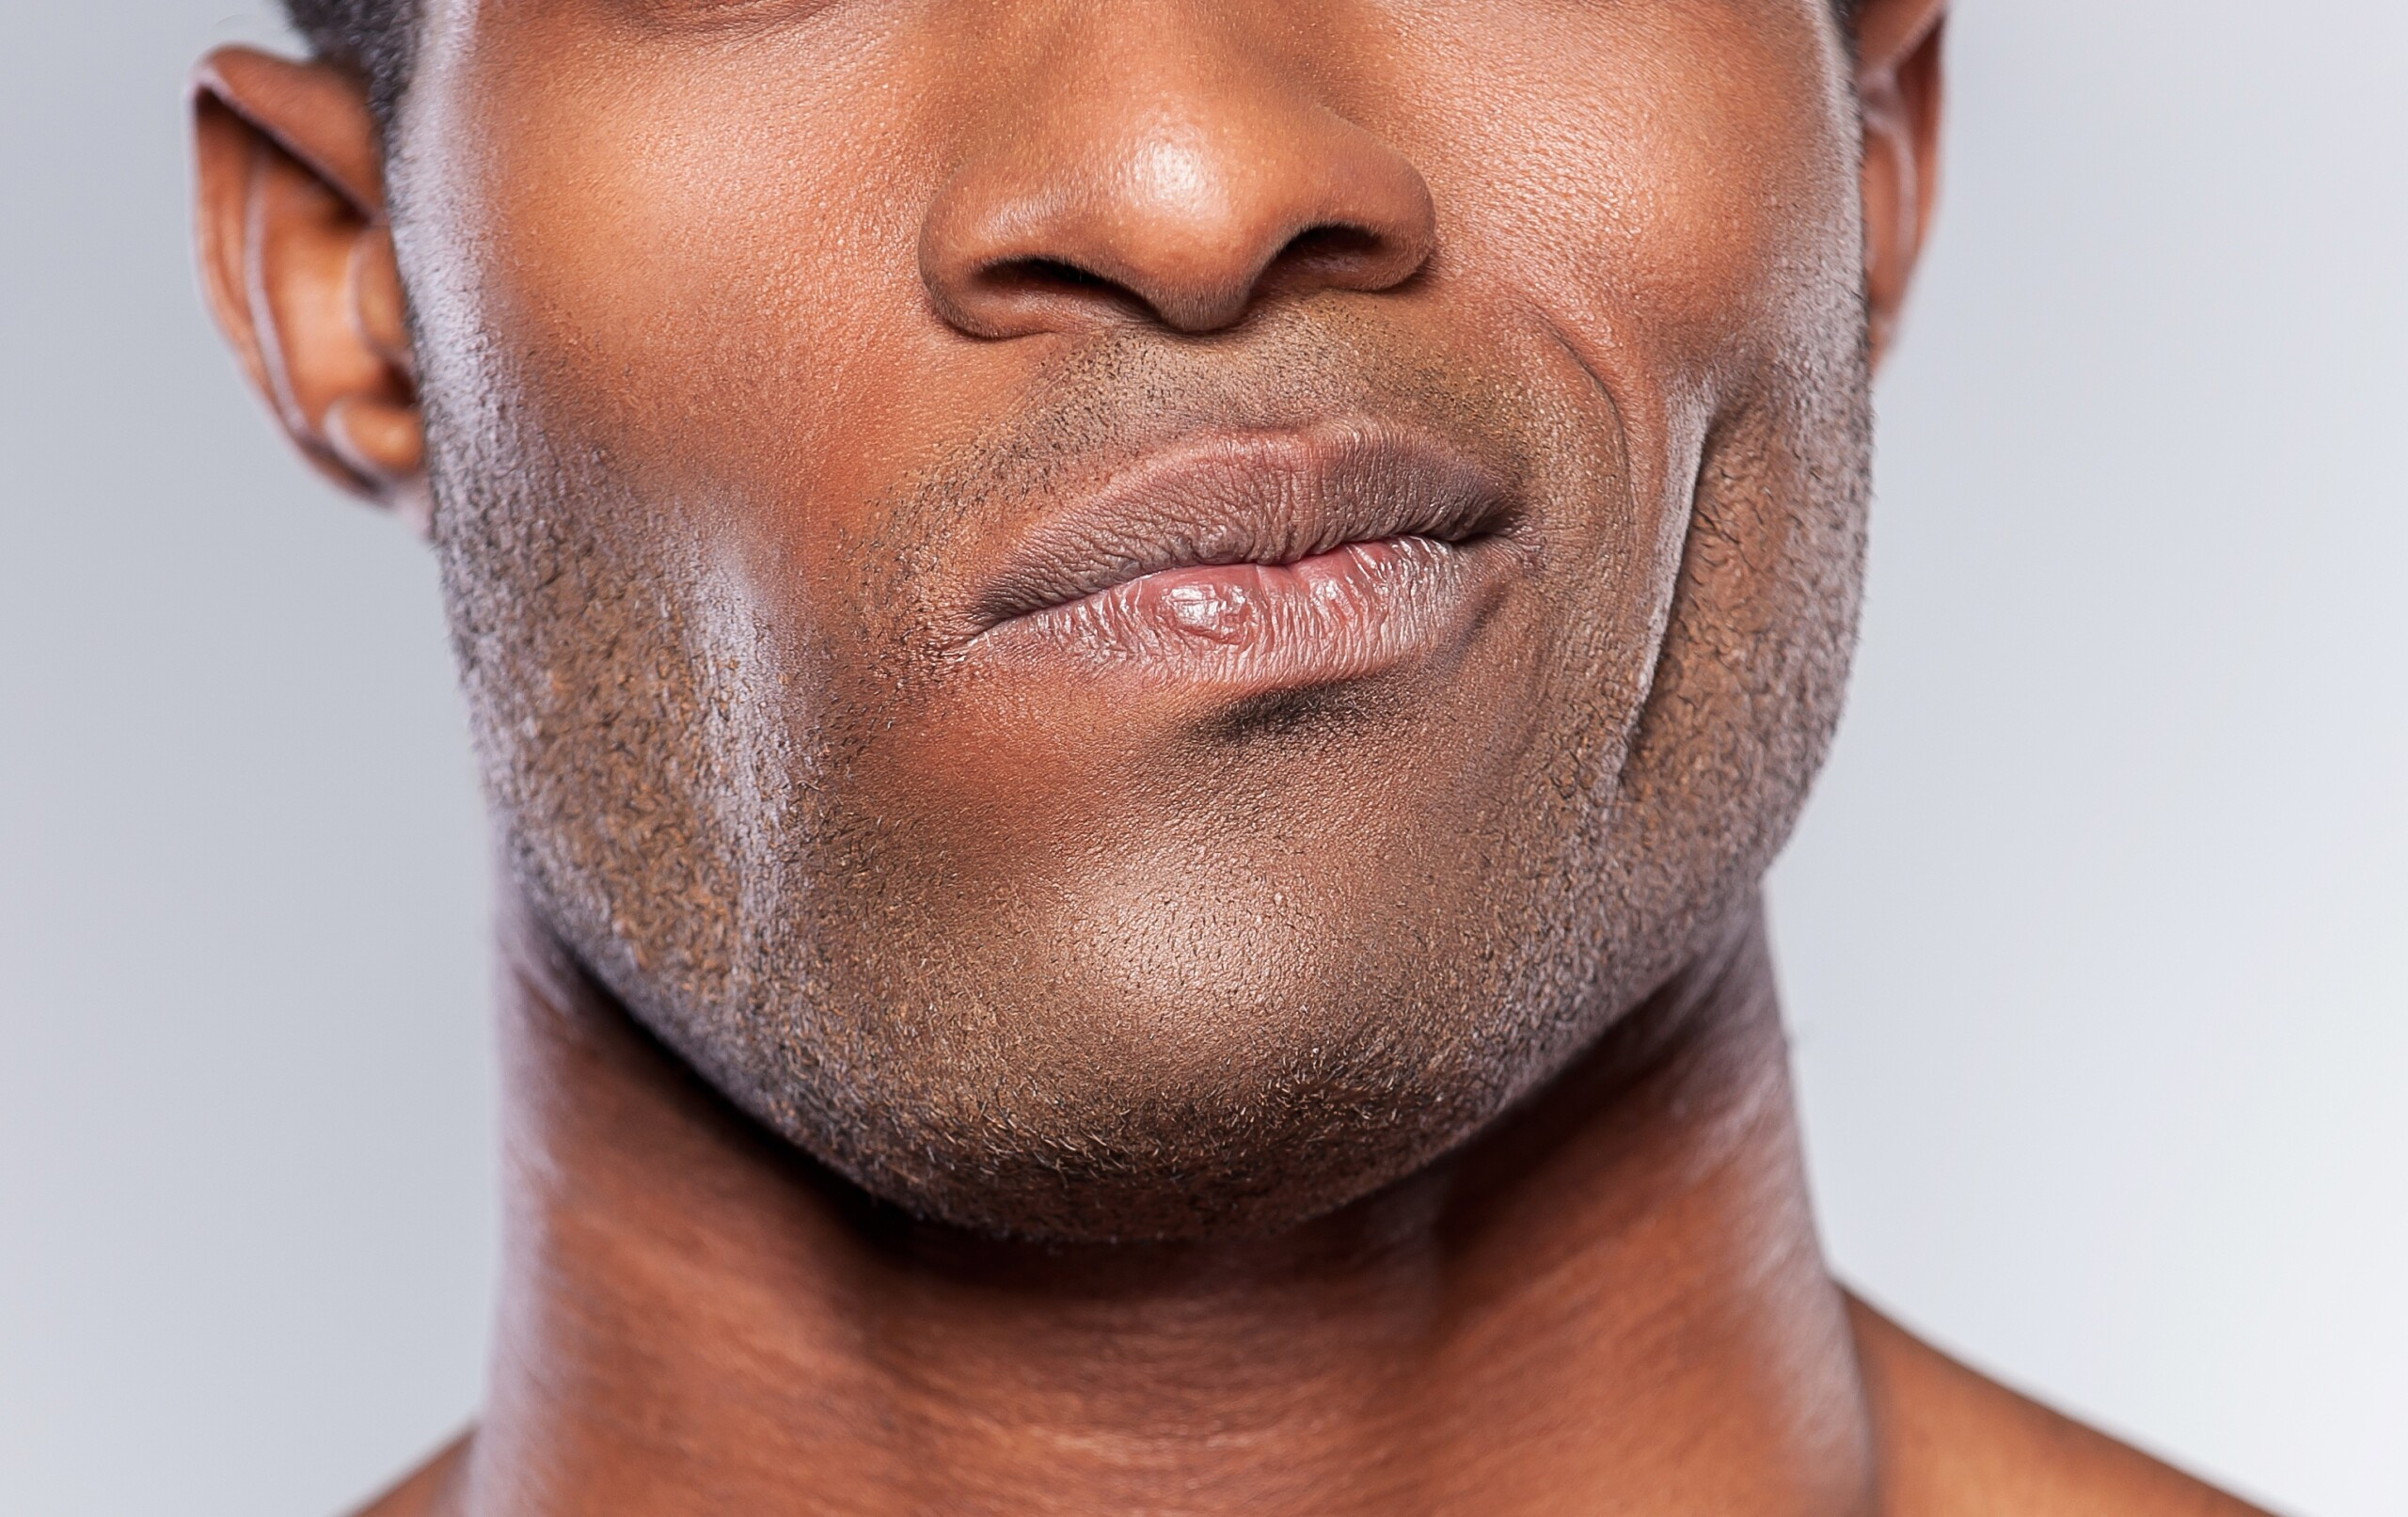 Can Muscle Twitching Be Caused by TMJ Disorder?